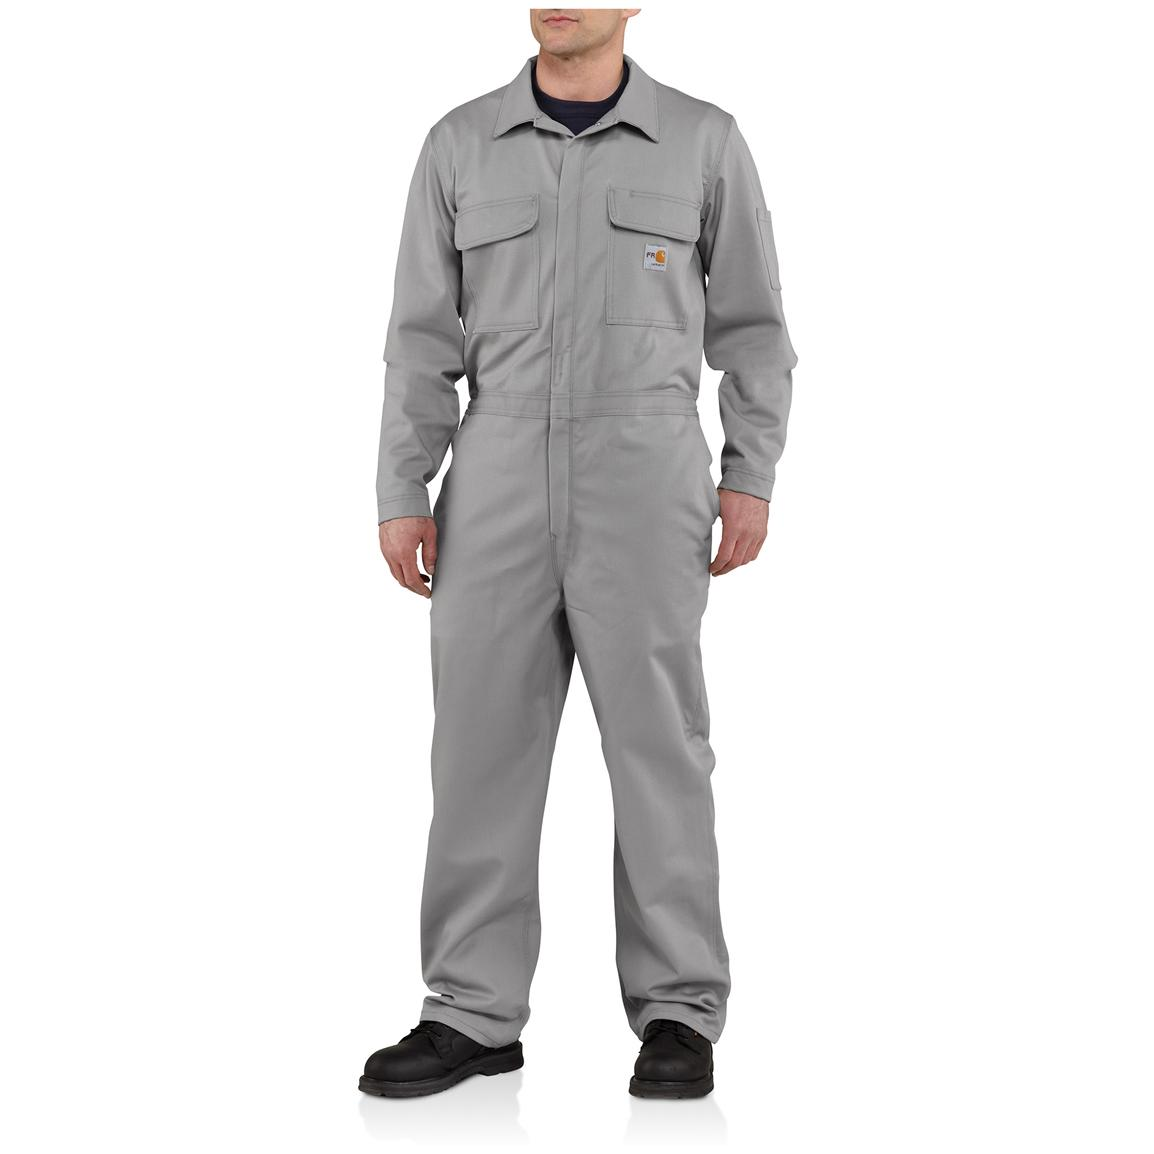 Carhartt® Flame-resistant Classic Twill Coveralls, Gray